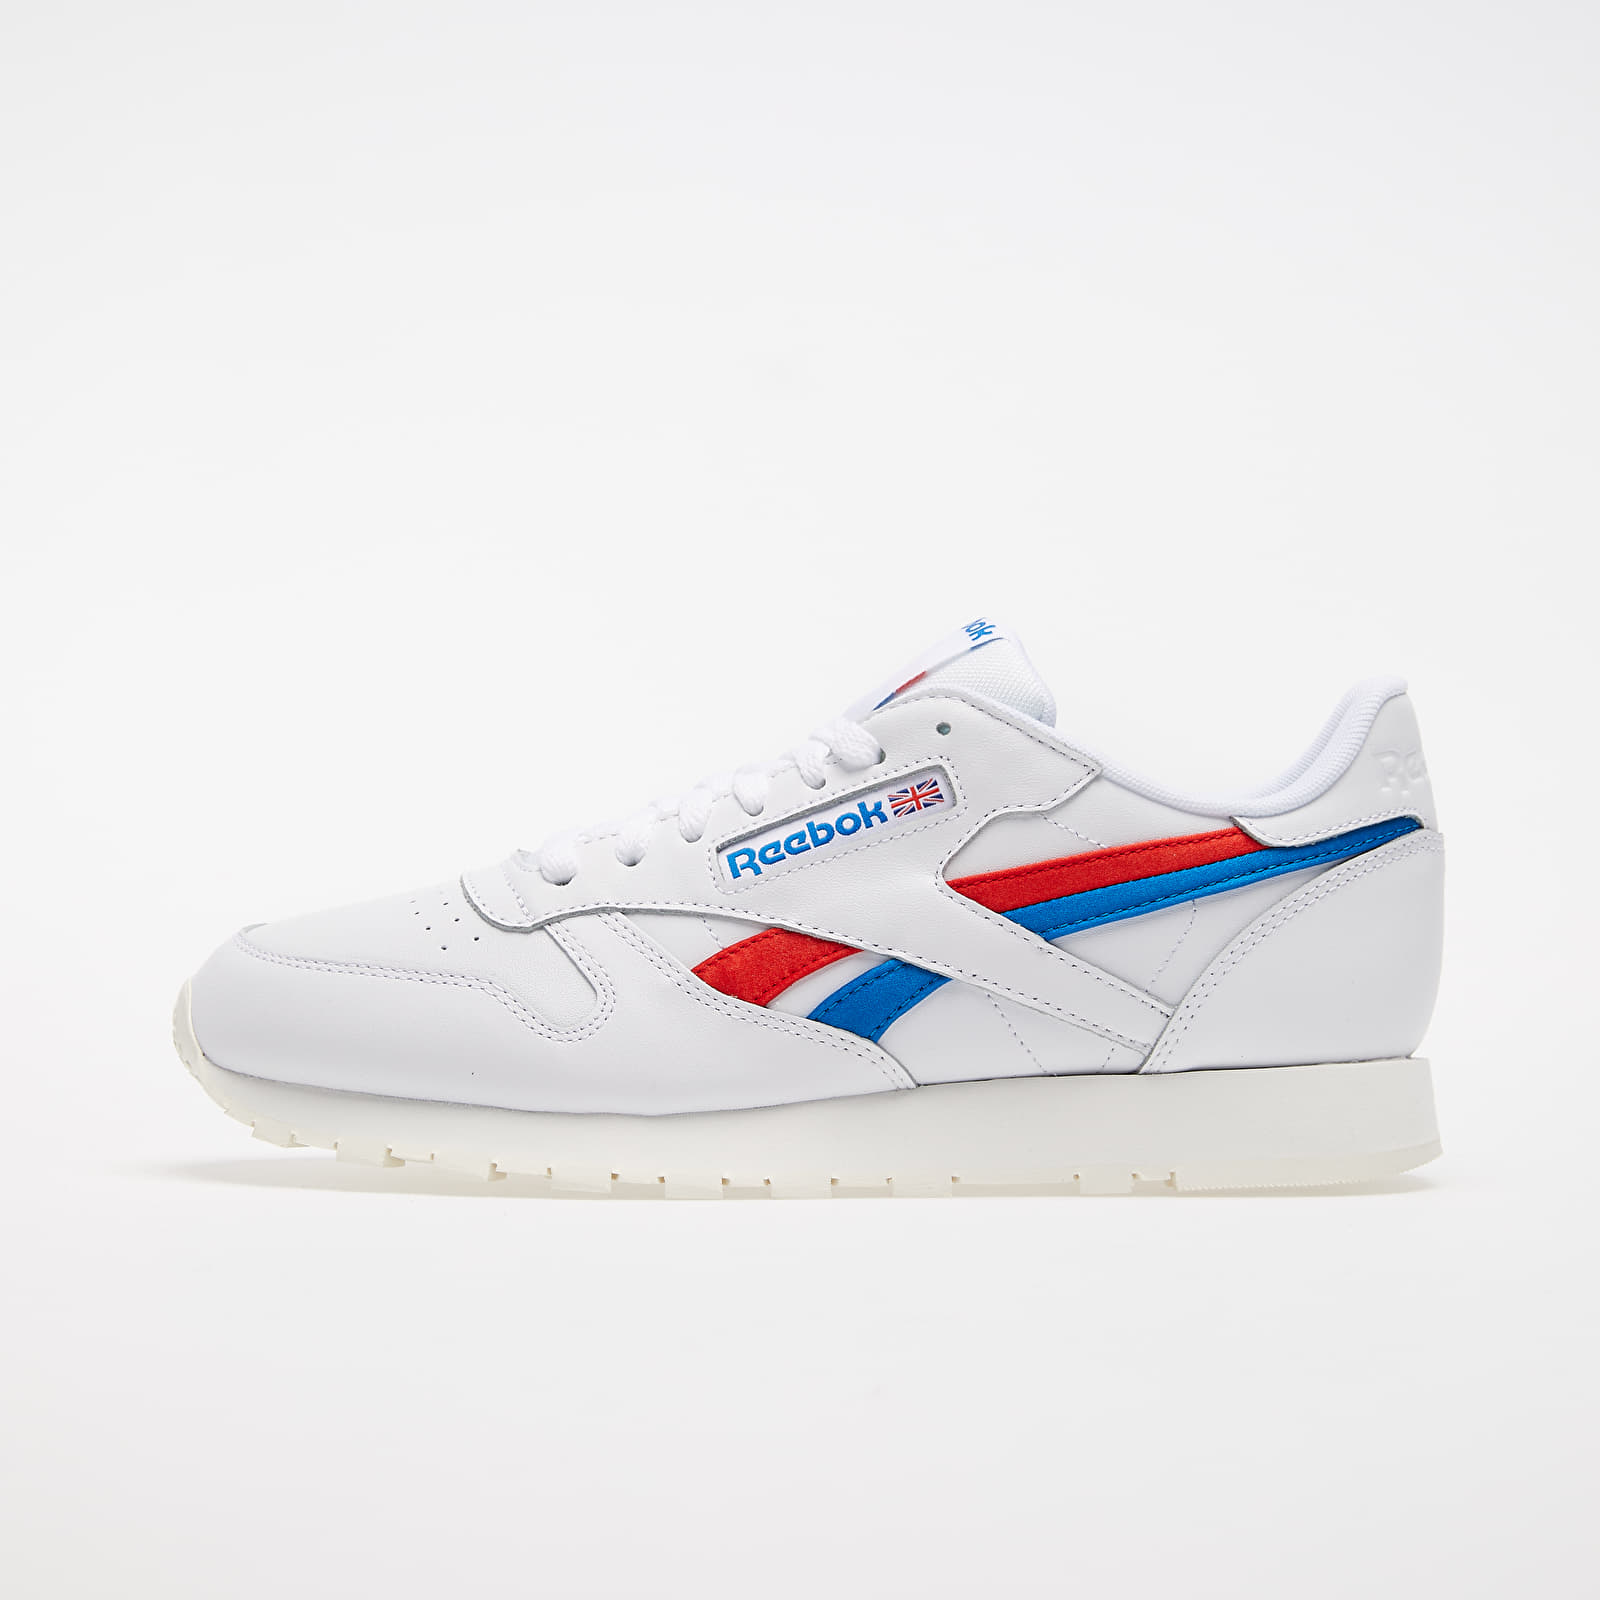 Men's shoes Reebok Classic Leather White/ Instinct Red/ Dynamic Blue